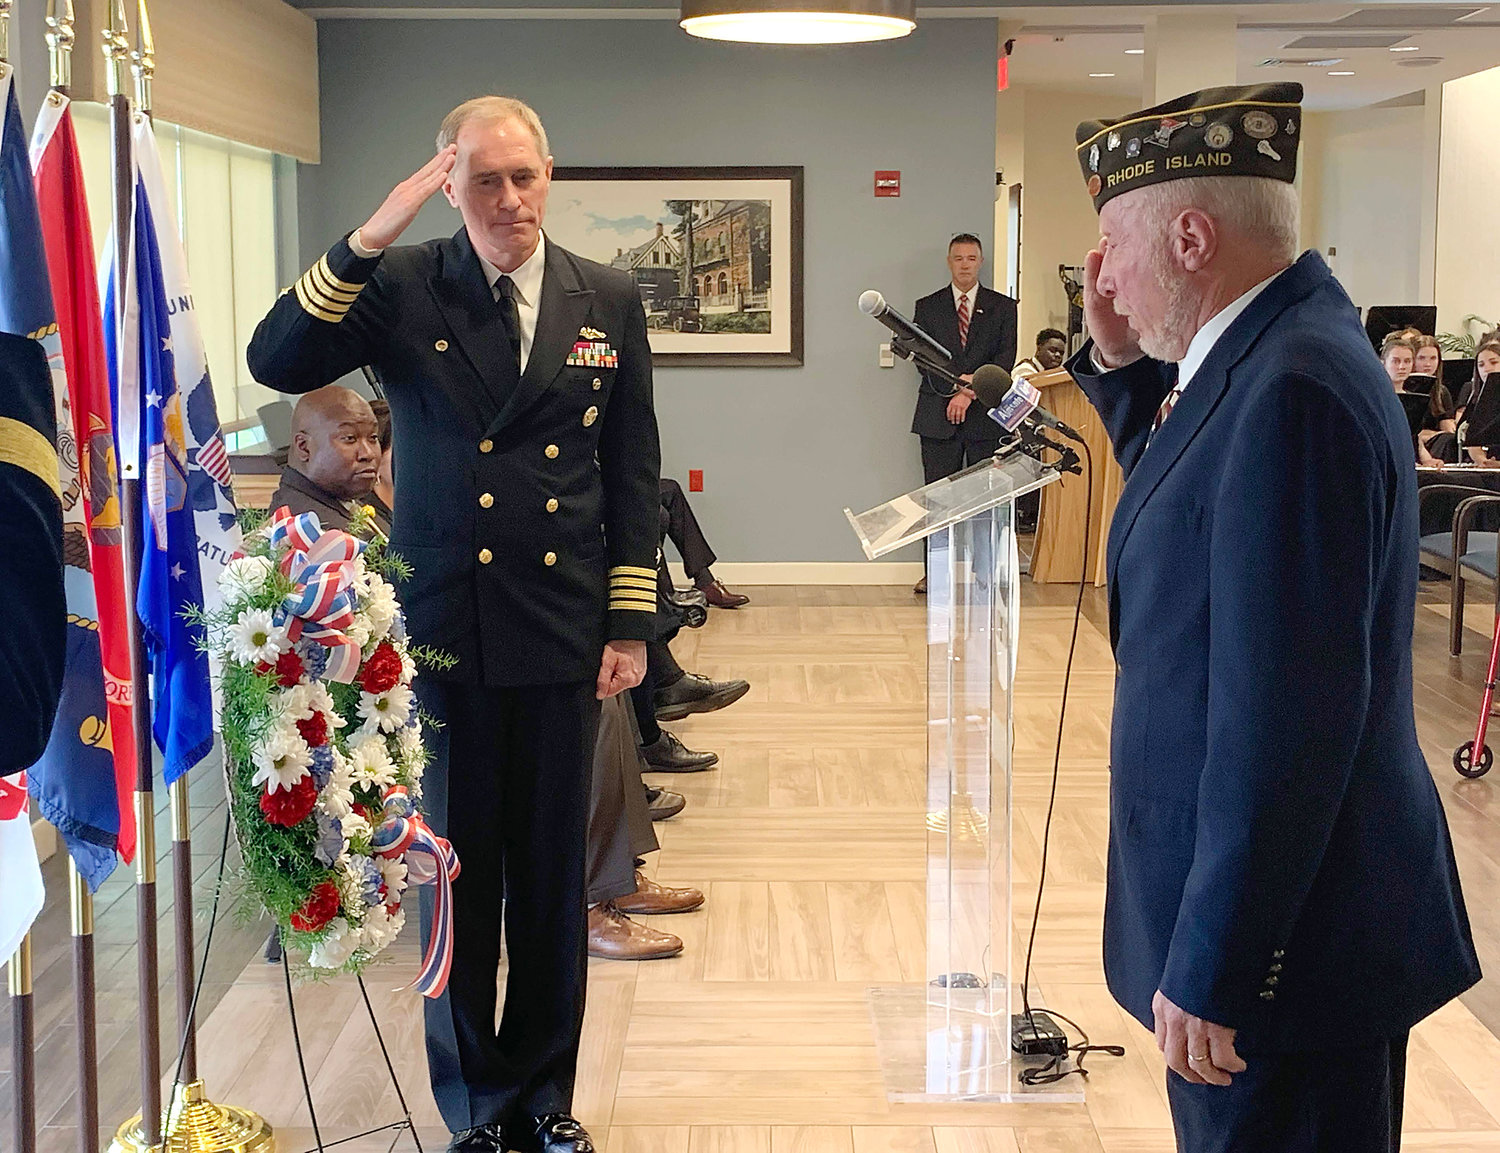 Captain Michael Coughlin (left) and XXX salute the memorial wreath after laying it during the ceremony.